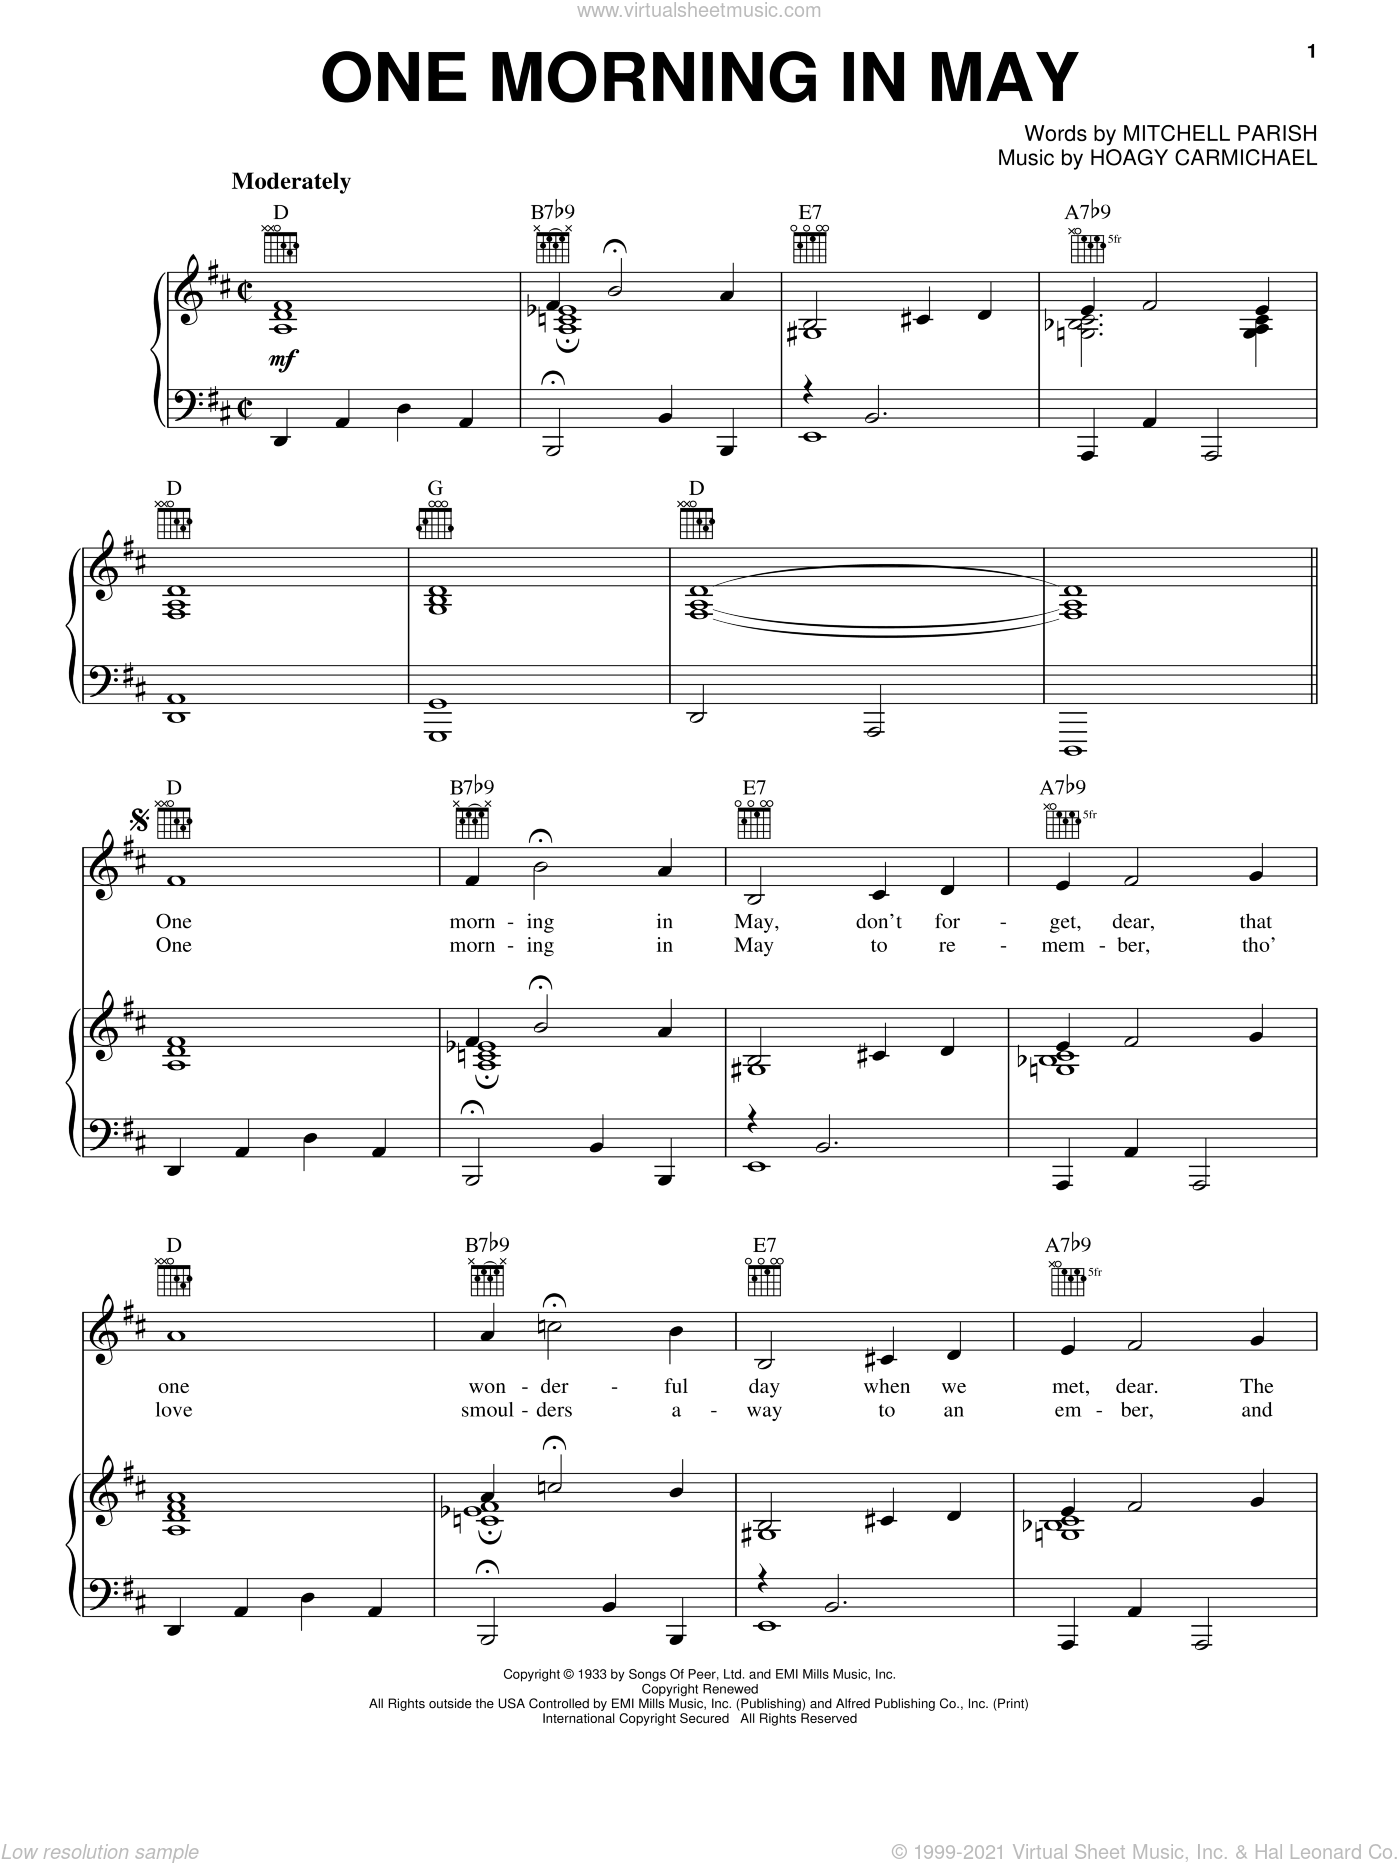 One Morning In May sheet music for voice, piano or guitar by Mitchell Parish and Hoagy Carmichael, intermediate skill level